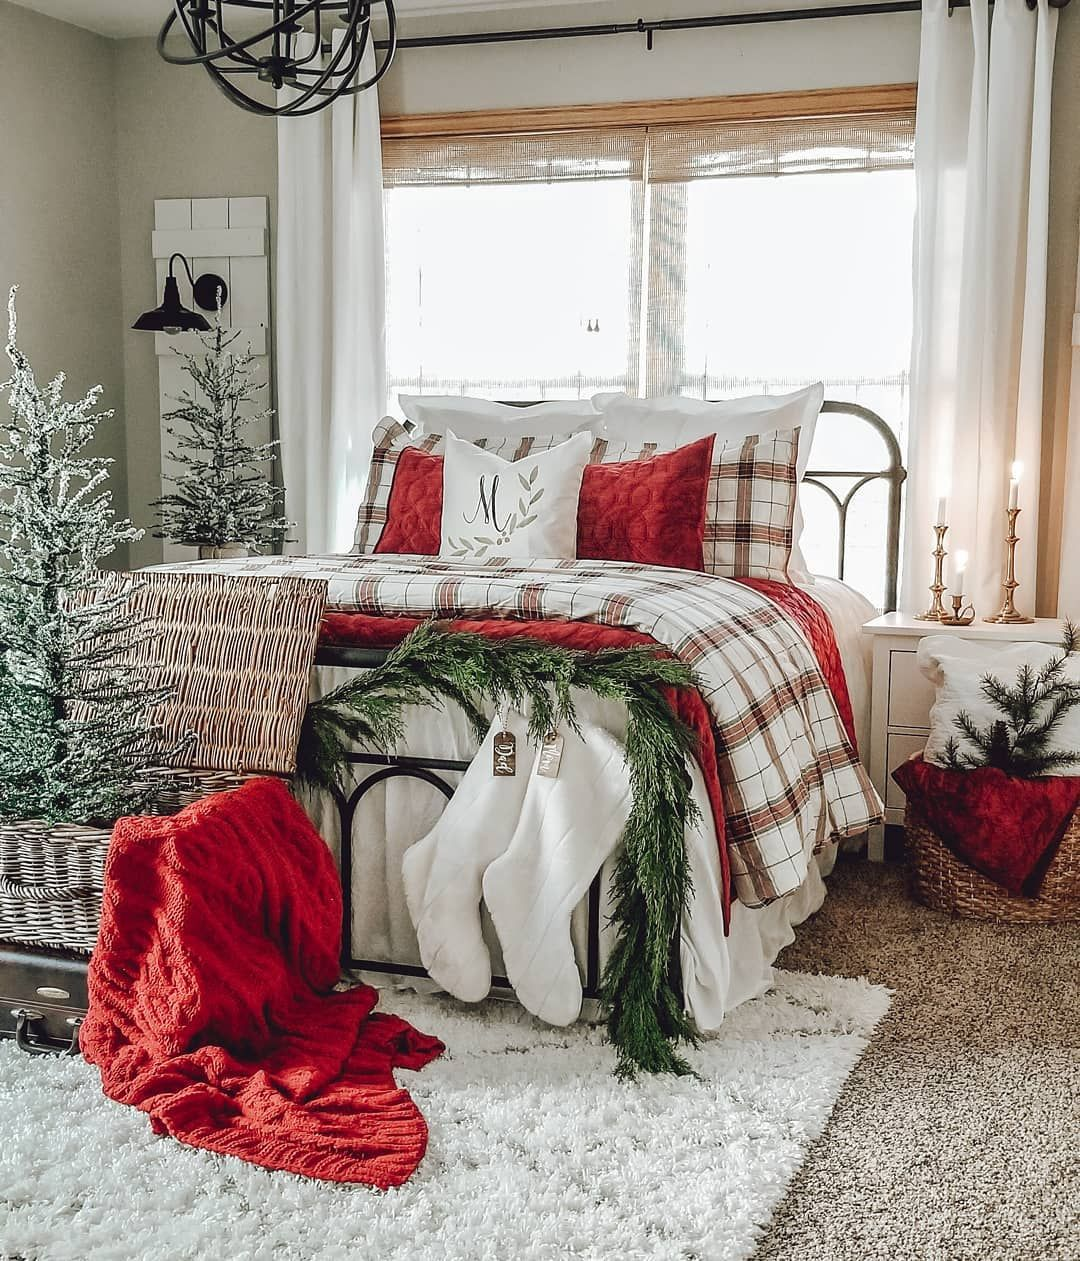 Amanda On Instagram Christmas Trees Cozy Bedding Candles Pretty Pillow From Re Christmas Bedroom Christmas Decorations Bedroom Christmas Room Decor A cozy christmas bedroom